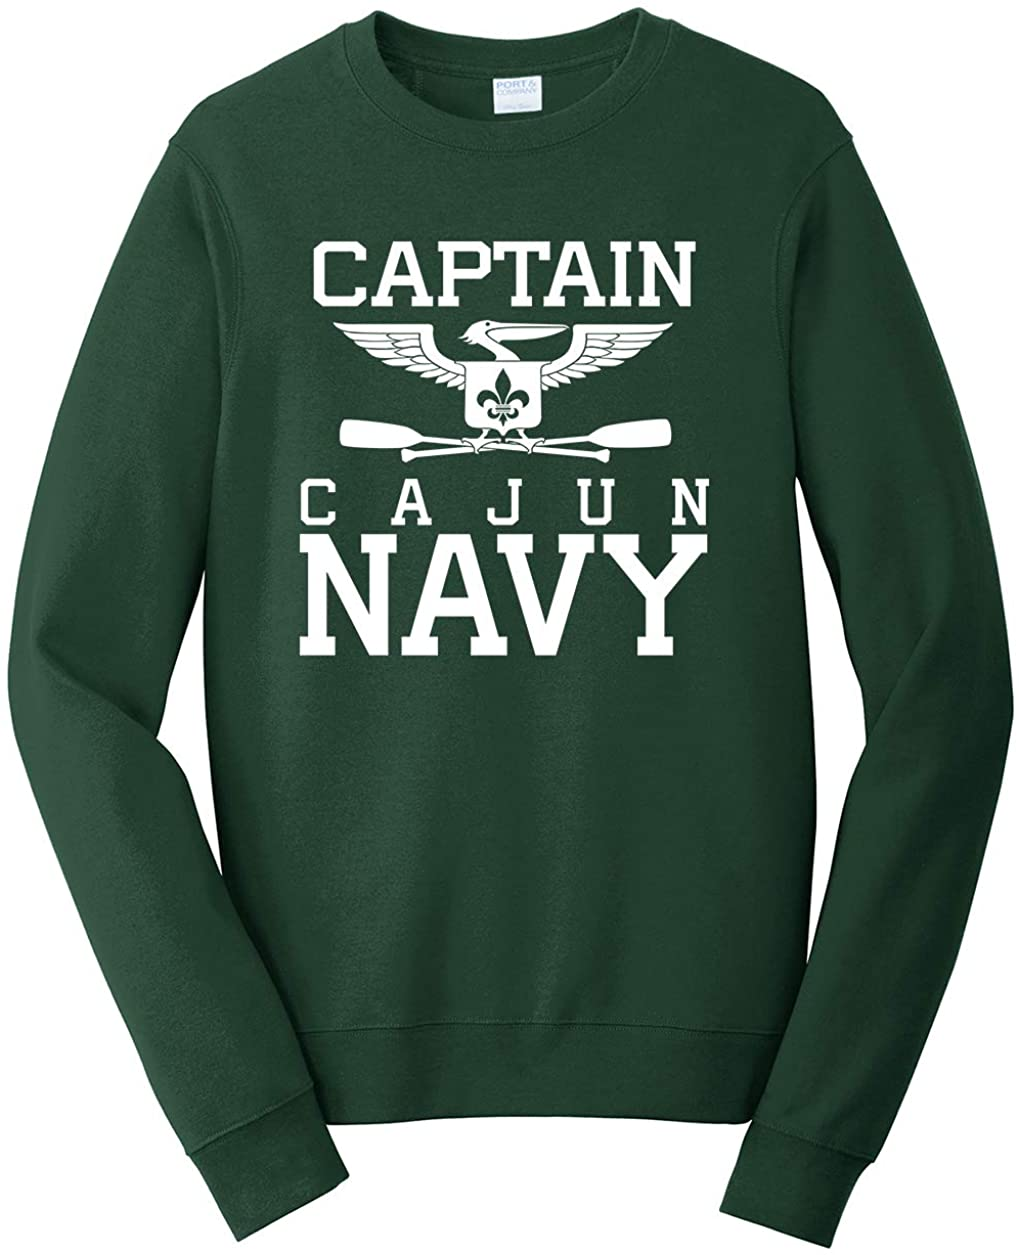 Tenacitee Men's Captain Cajun Navy Sweatshirt